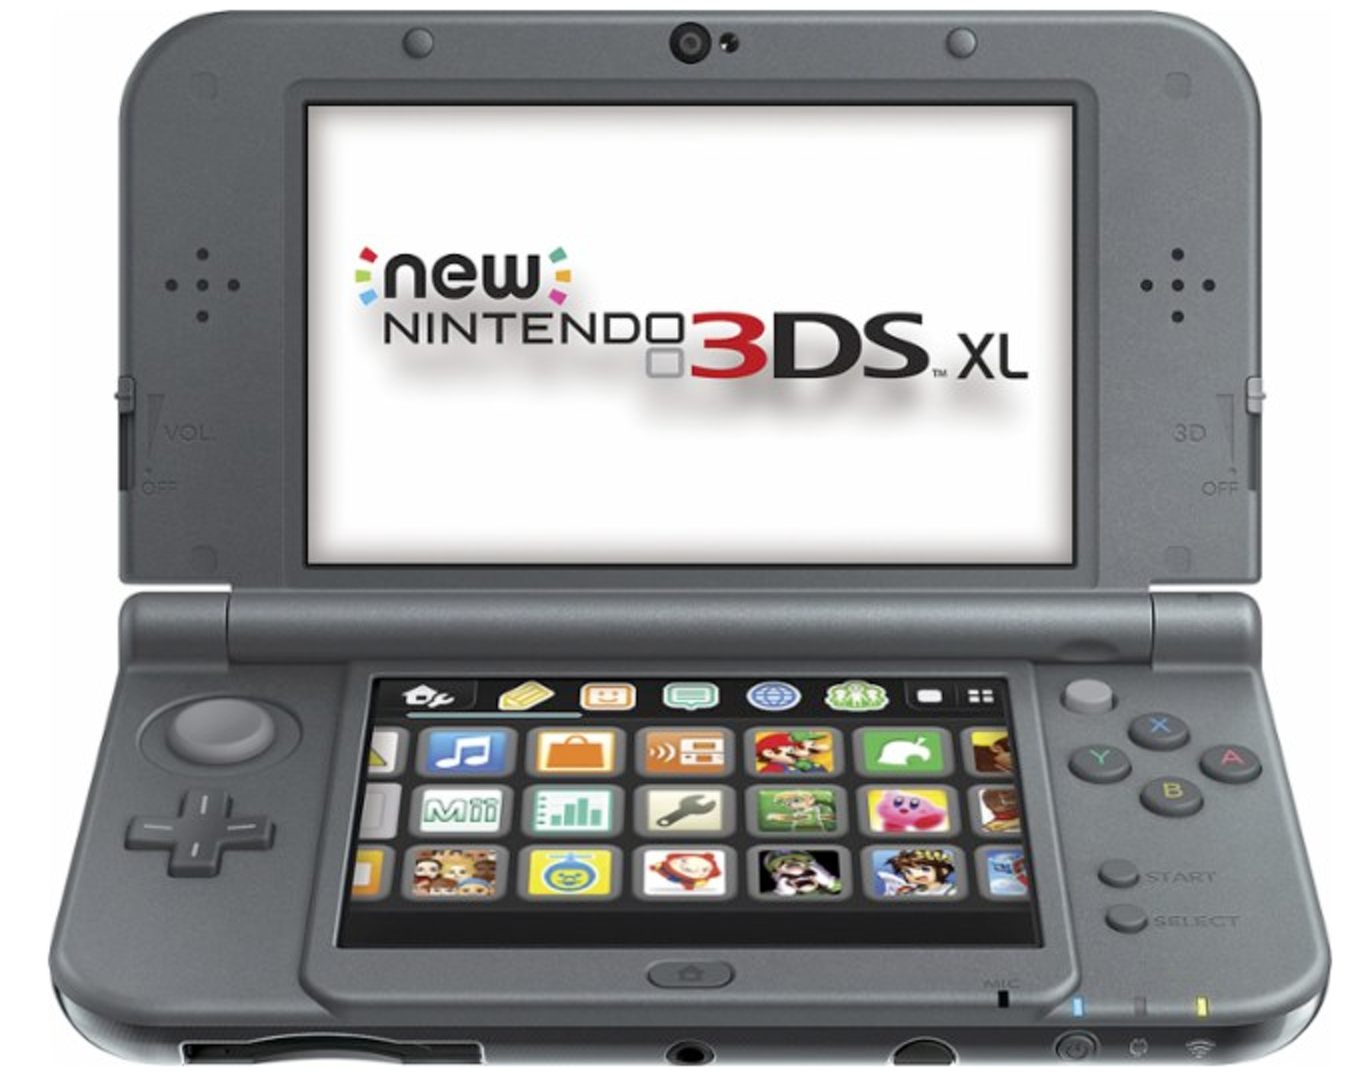 The Nintendo 3DS XL